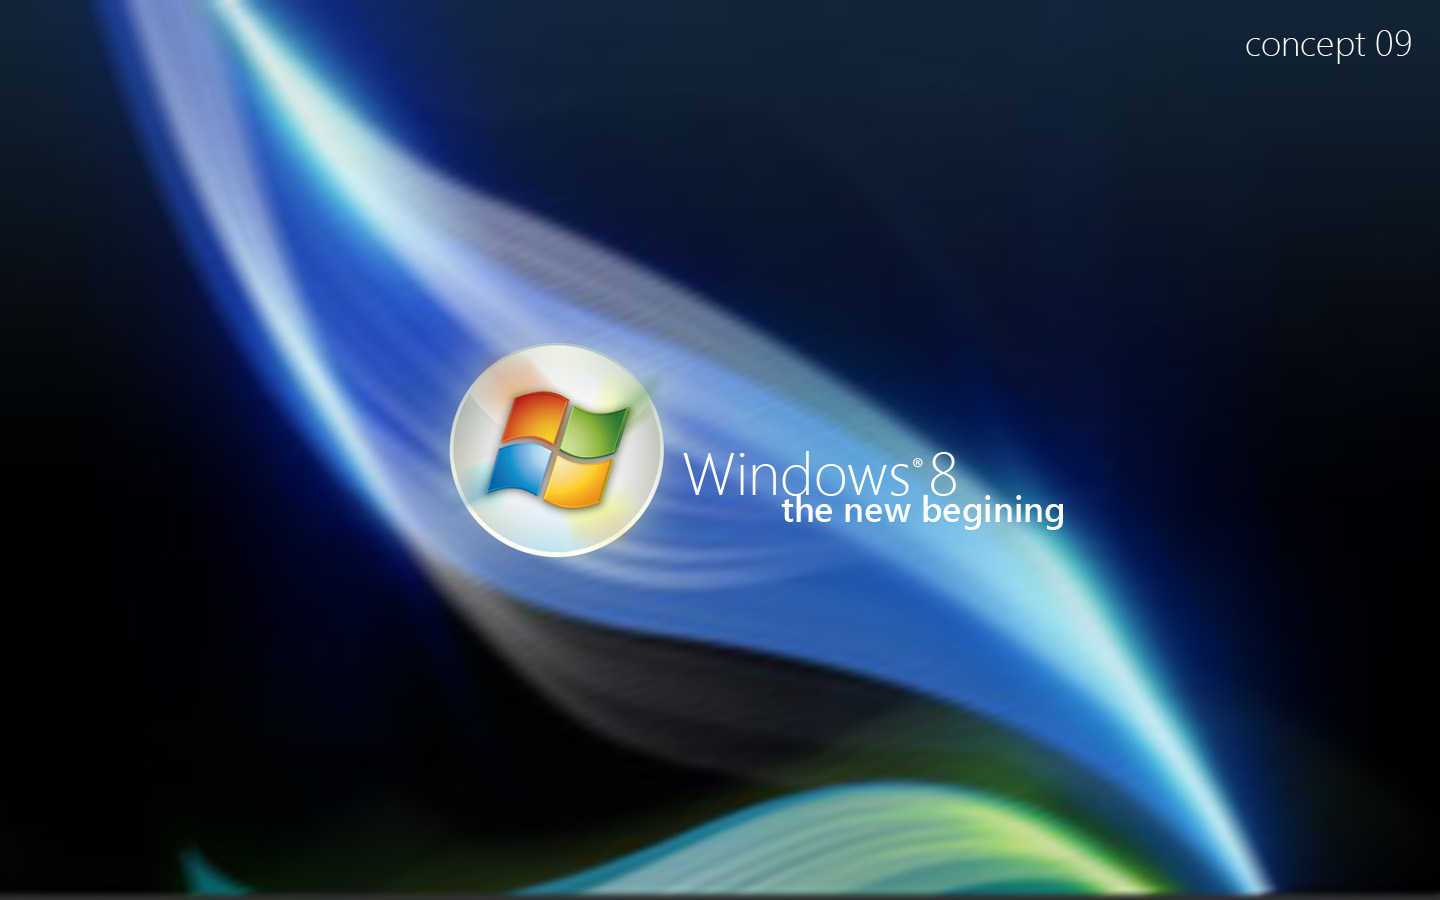 Windows 8 Codigo Geek 1440x900